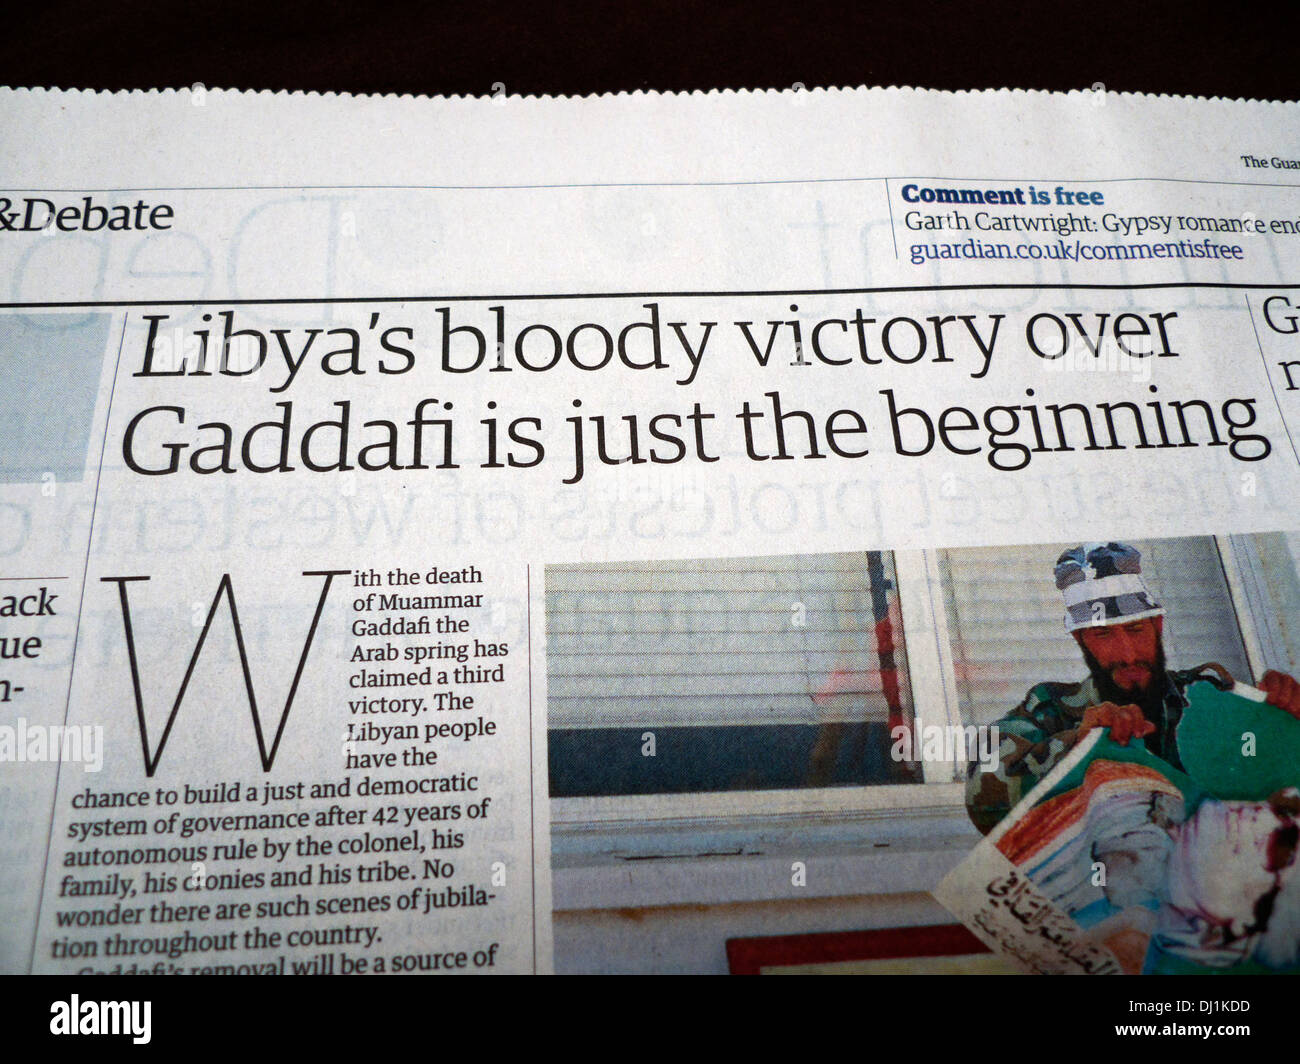 'Libya's bloody victory over Gaddafi is just the beginning' article on the death of Muammar Gaddafi - Stock Image